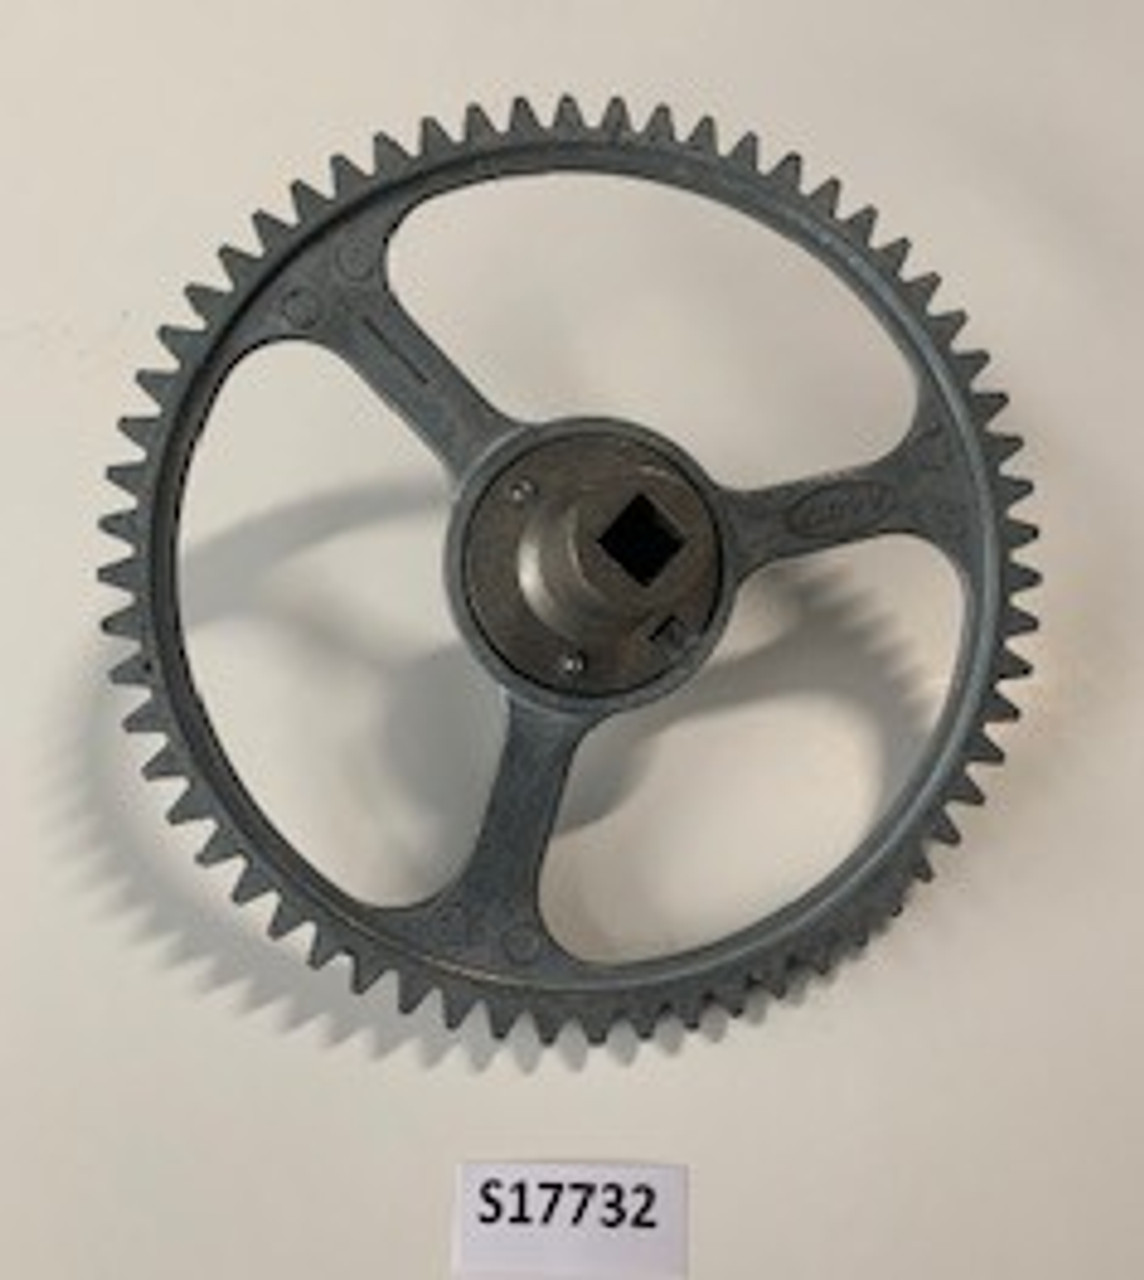 Gear, Economizer R29590 Coupled to P56000, Aaon, S17732